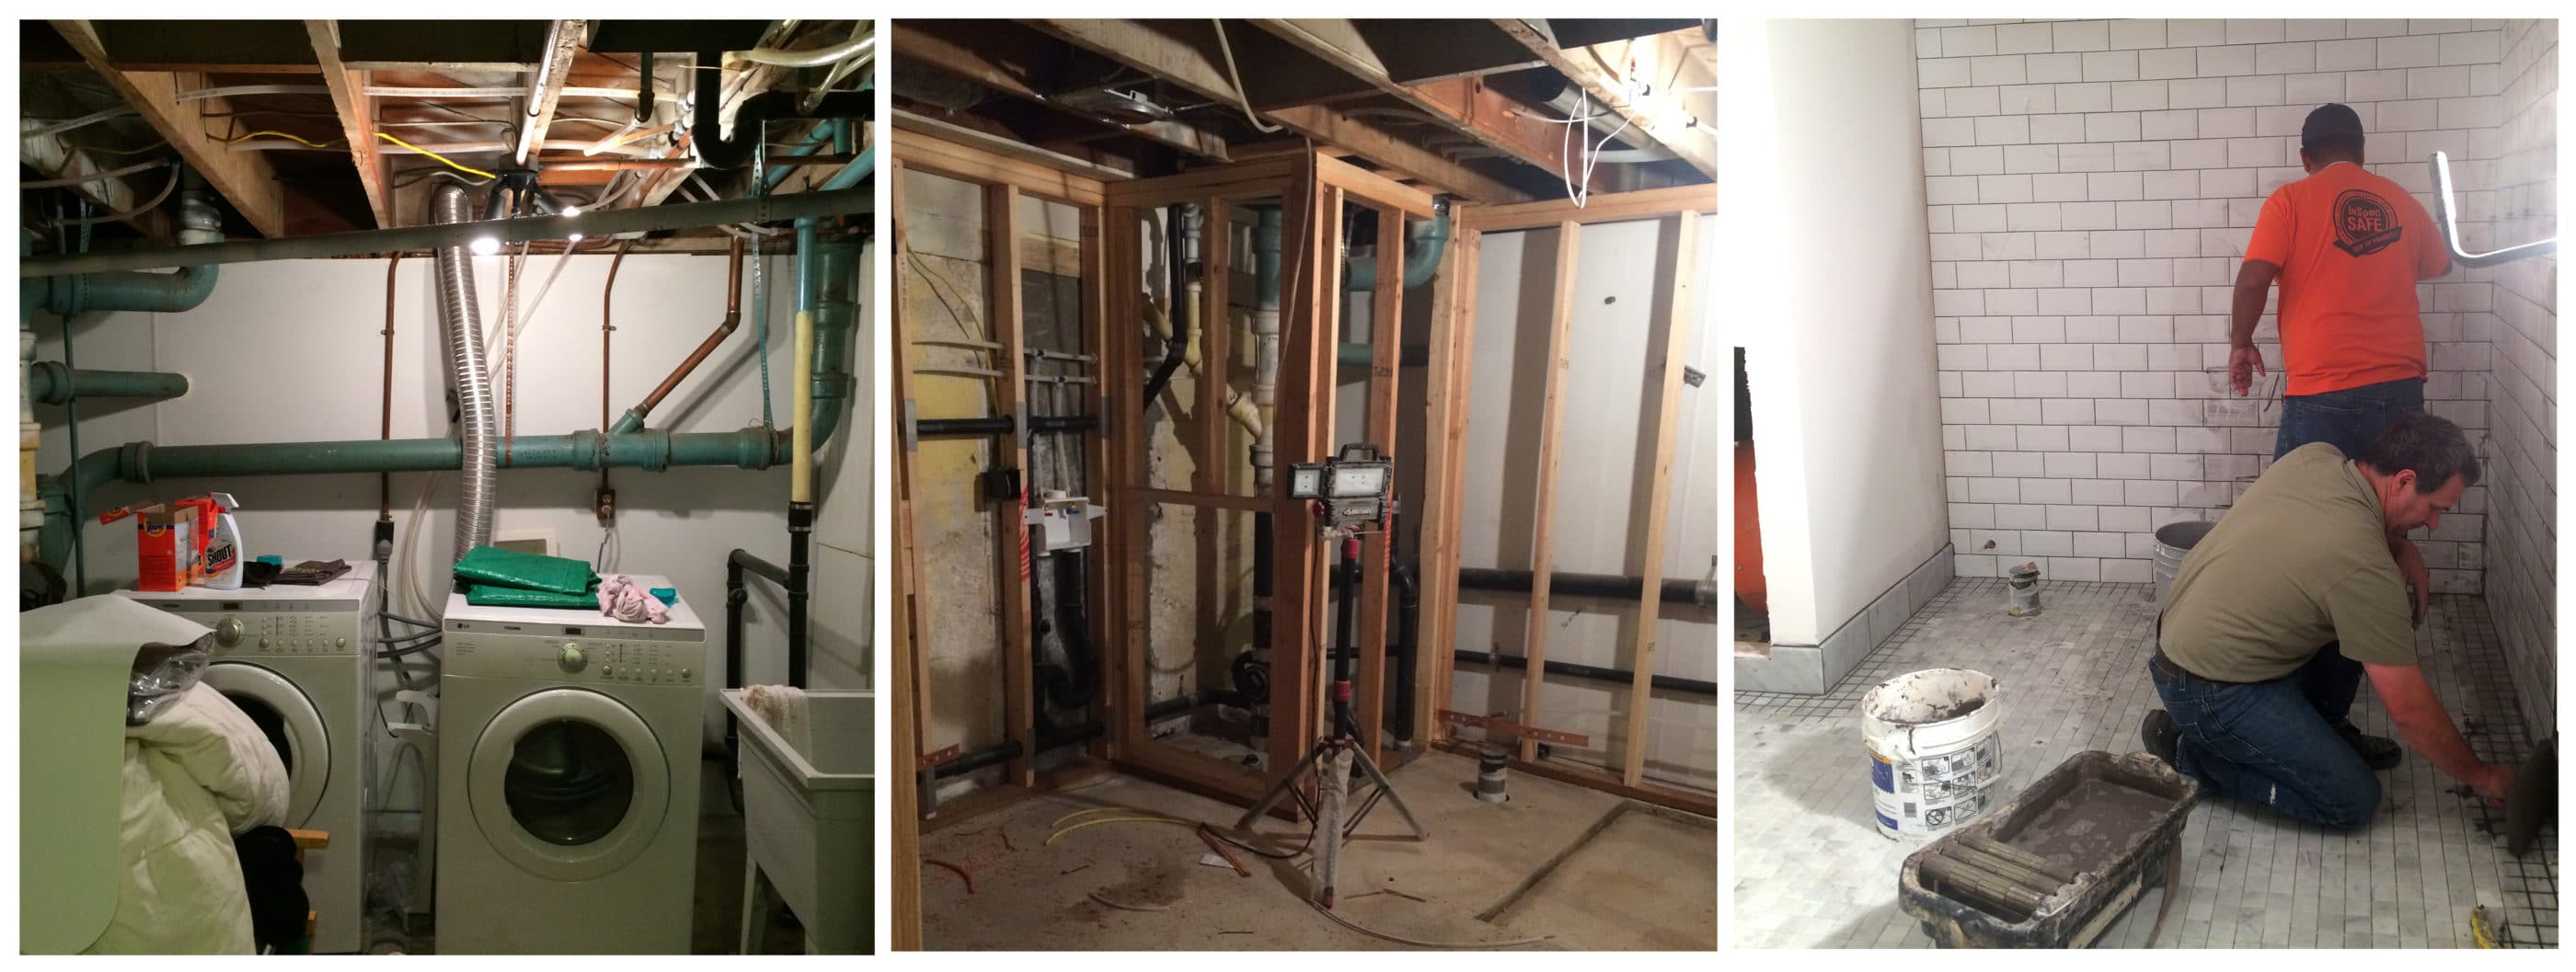 bathroom demo and remodel